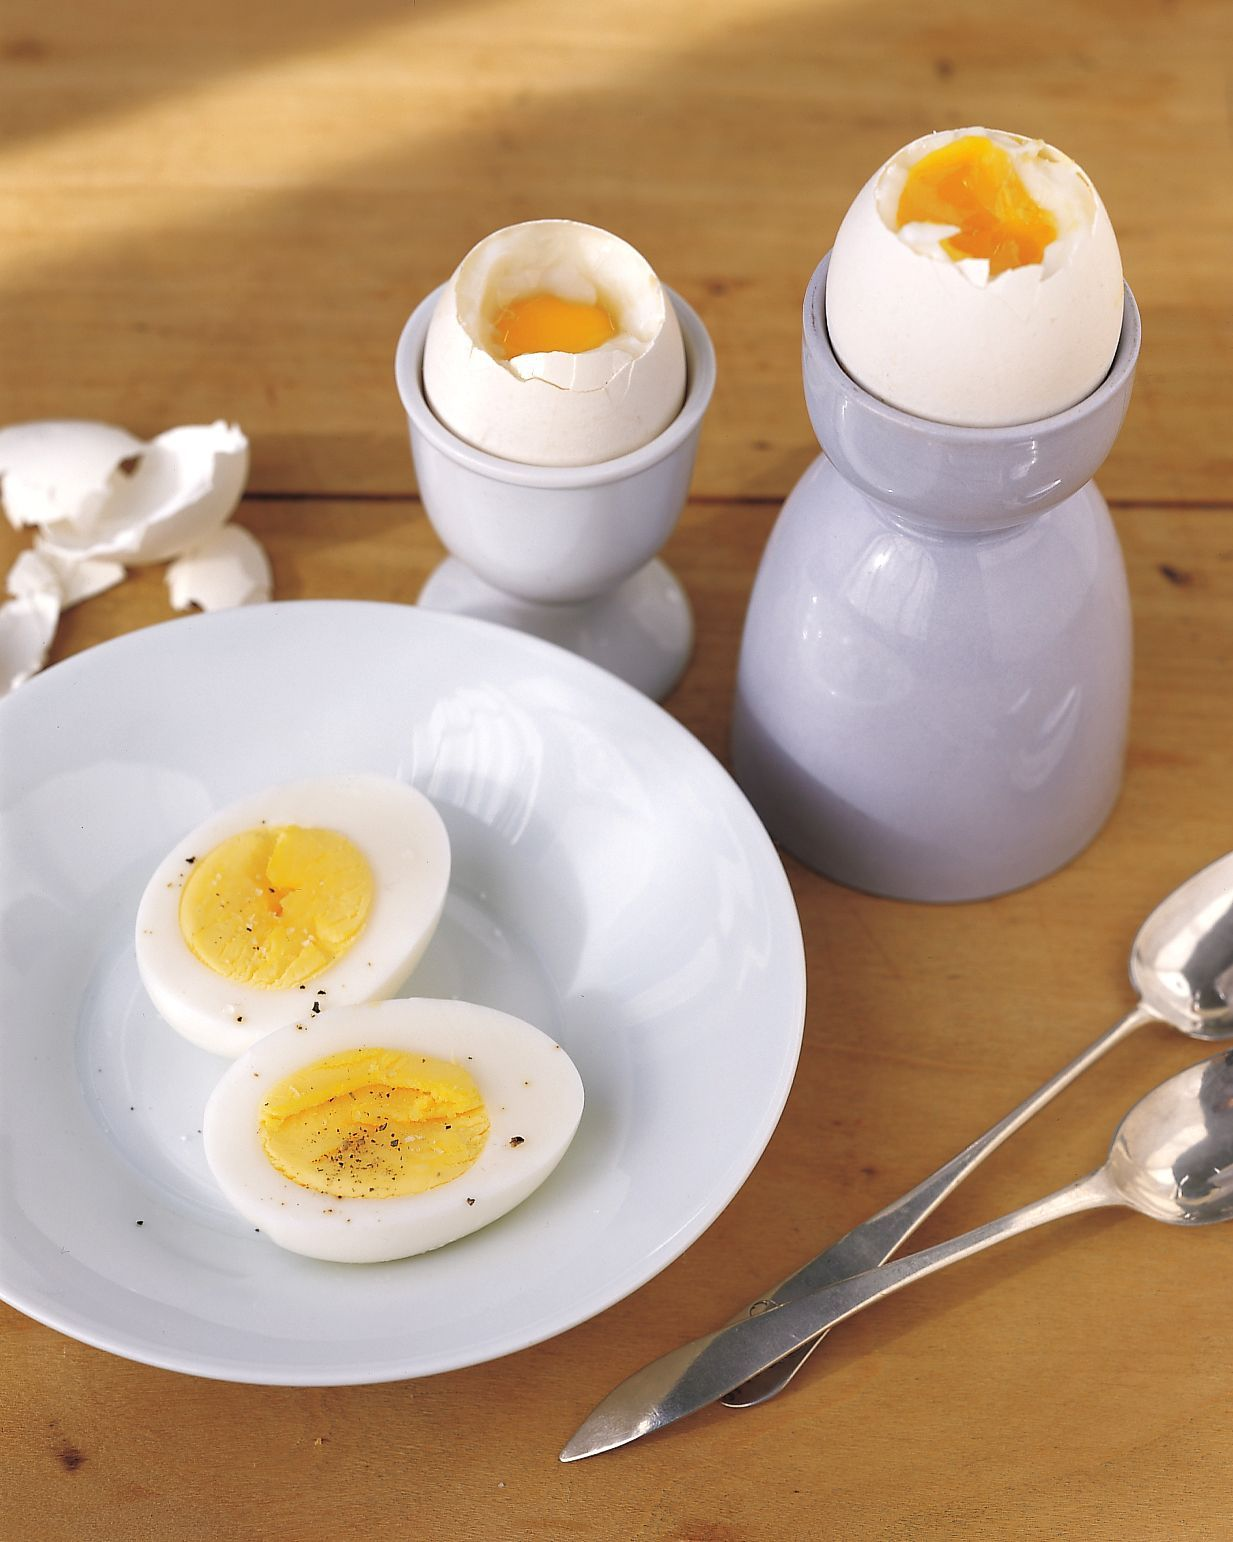 Martha's Soft-Boiled Eggs #boiledeggnutrition Martha's Soft-Boiled Eggs #hardboiledeggs